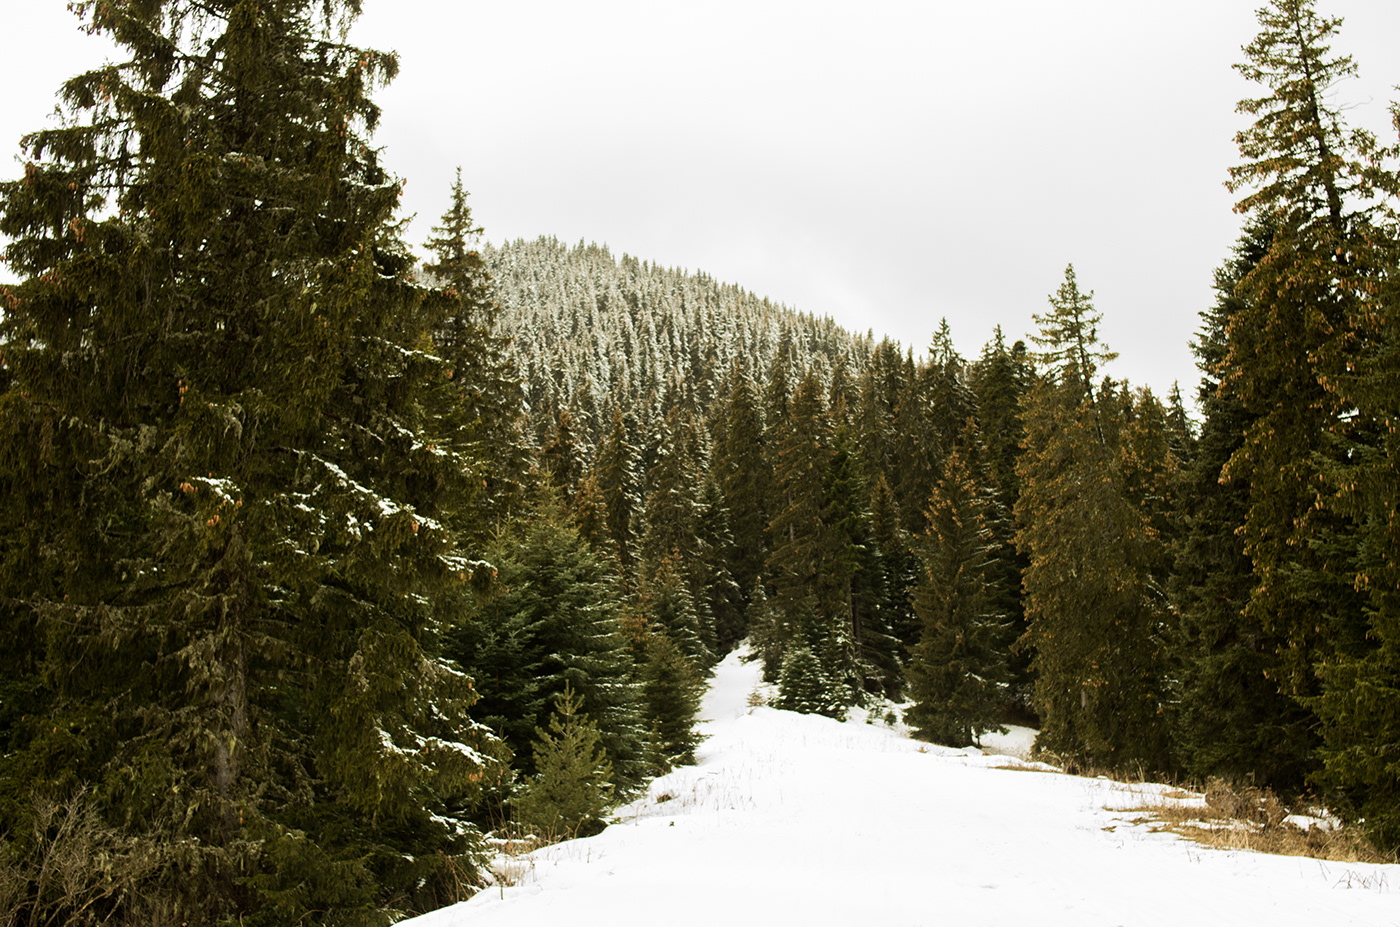 Wooded trails and snowy hills.